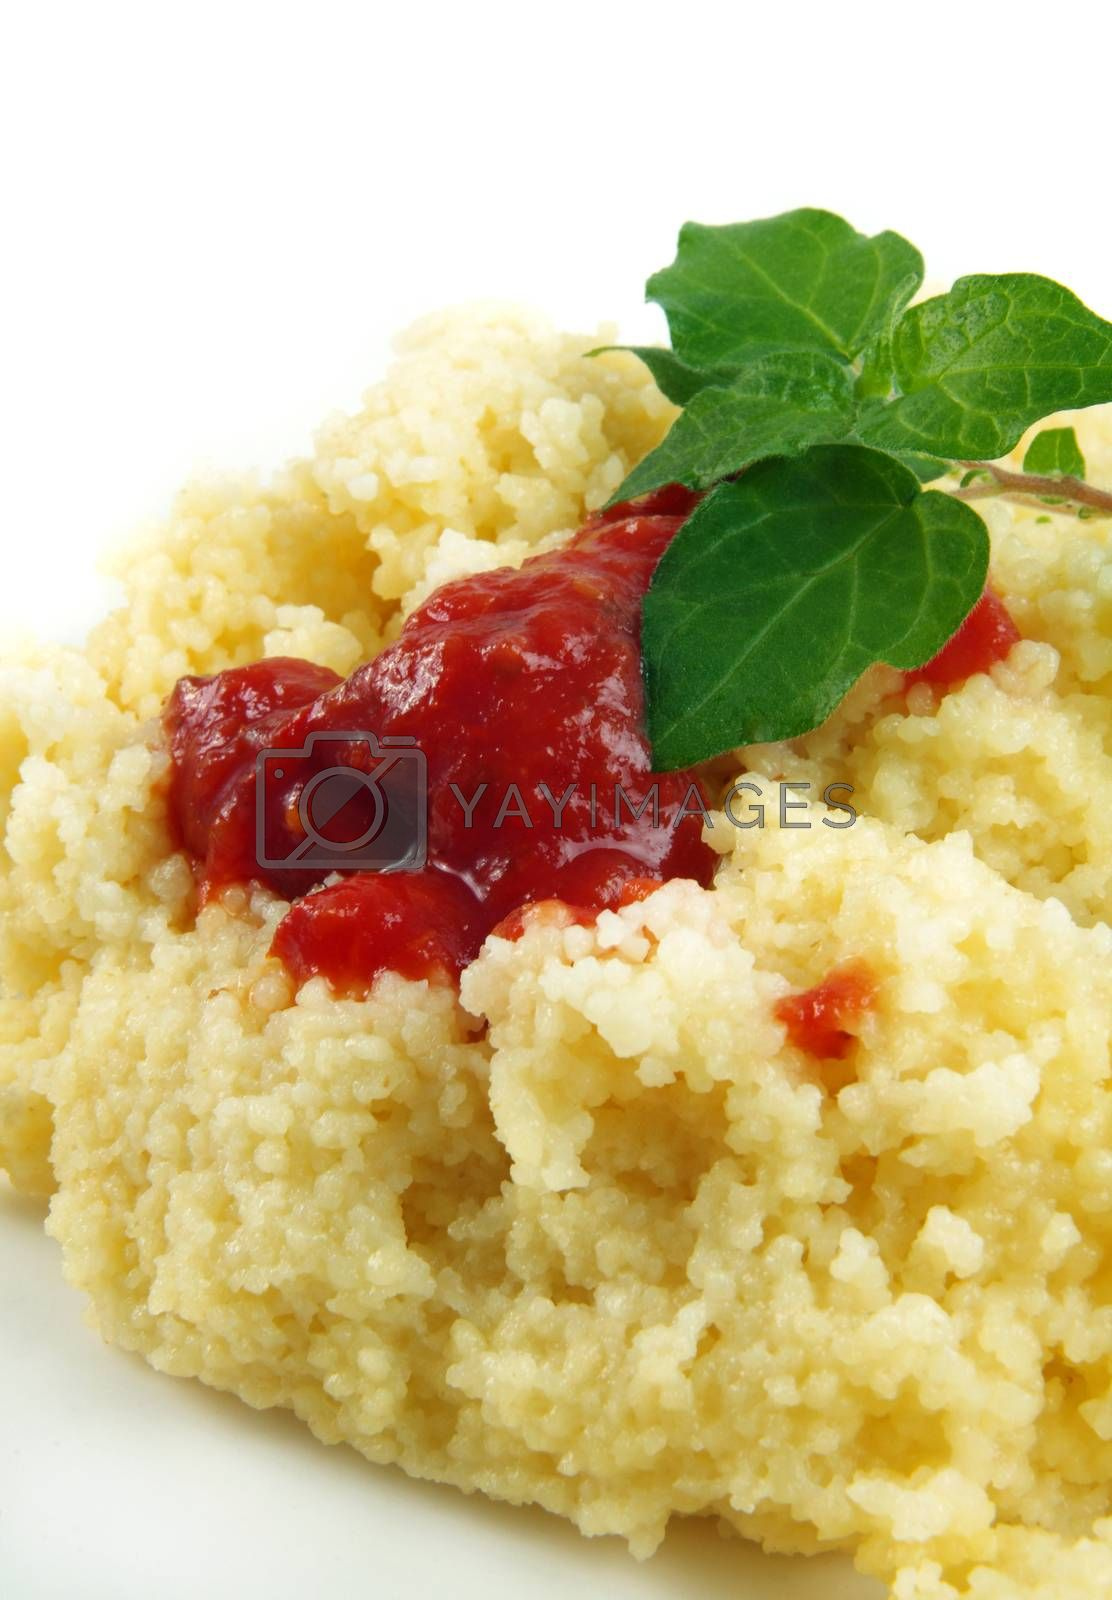 gourmet food.cous cous with sauce